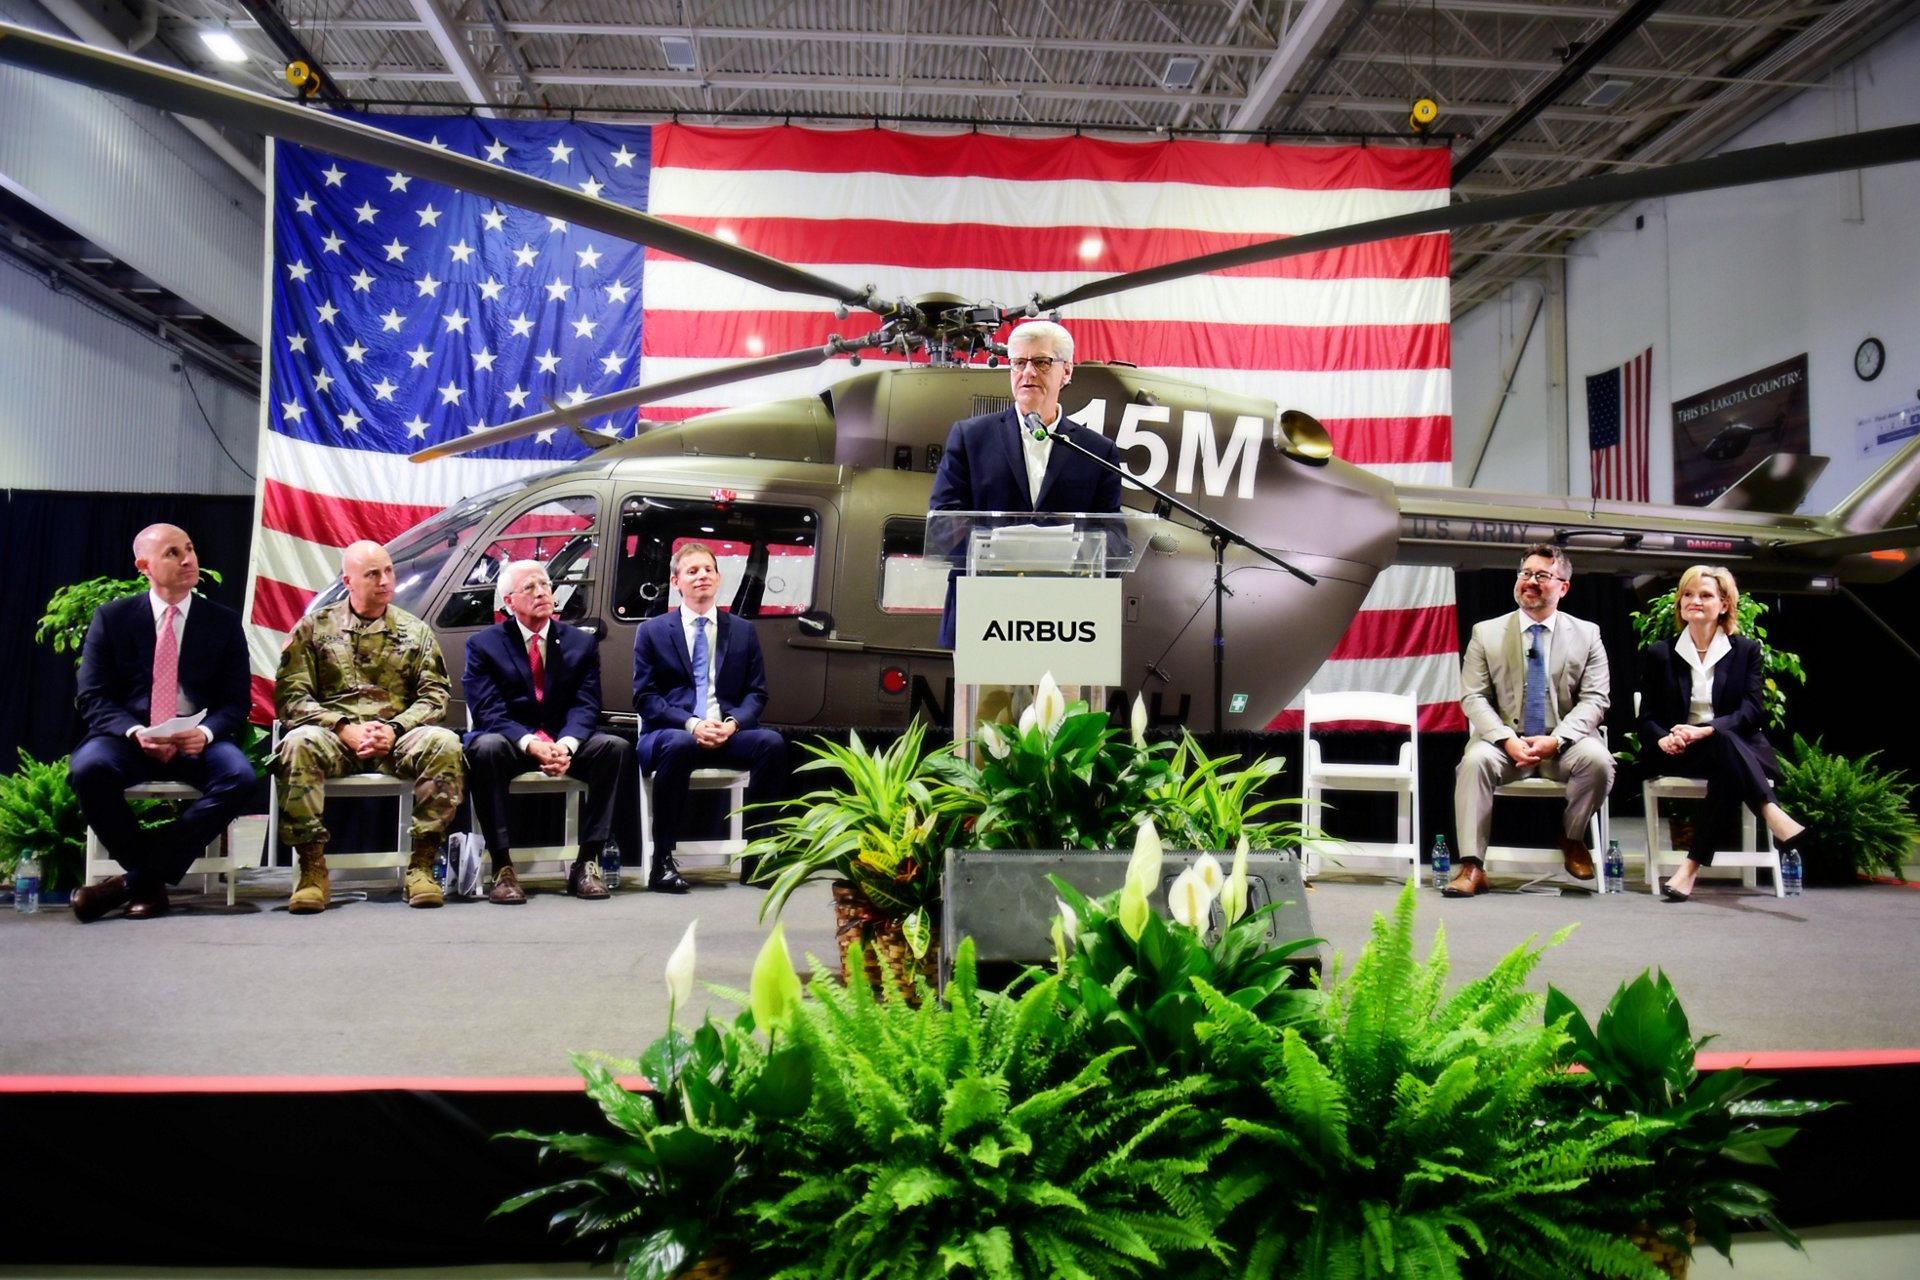 Mississippi Governor Phil Bryant congratulating Airbus Helicopters Inc.'s employees on the job well done.